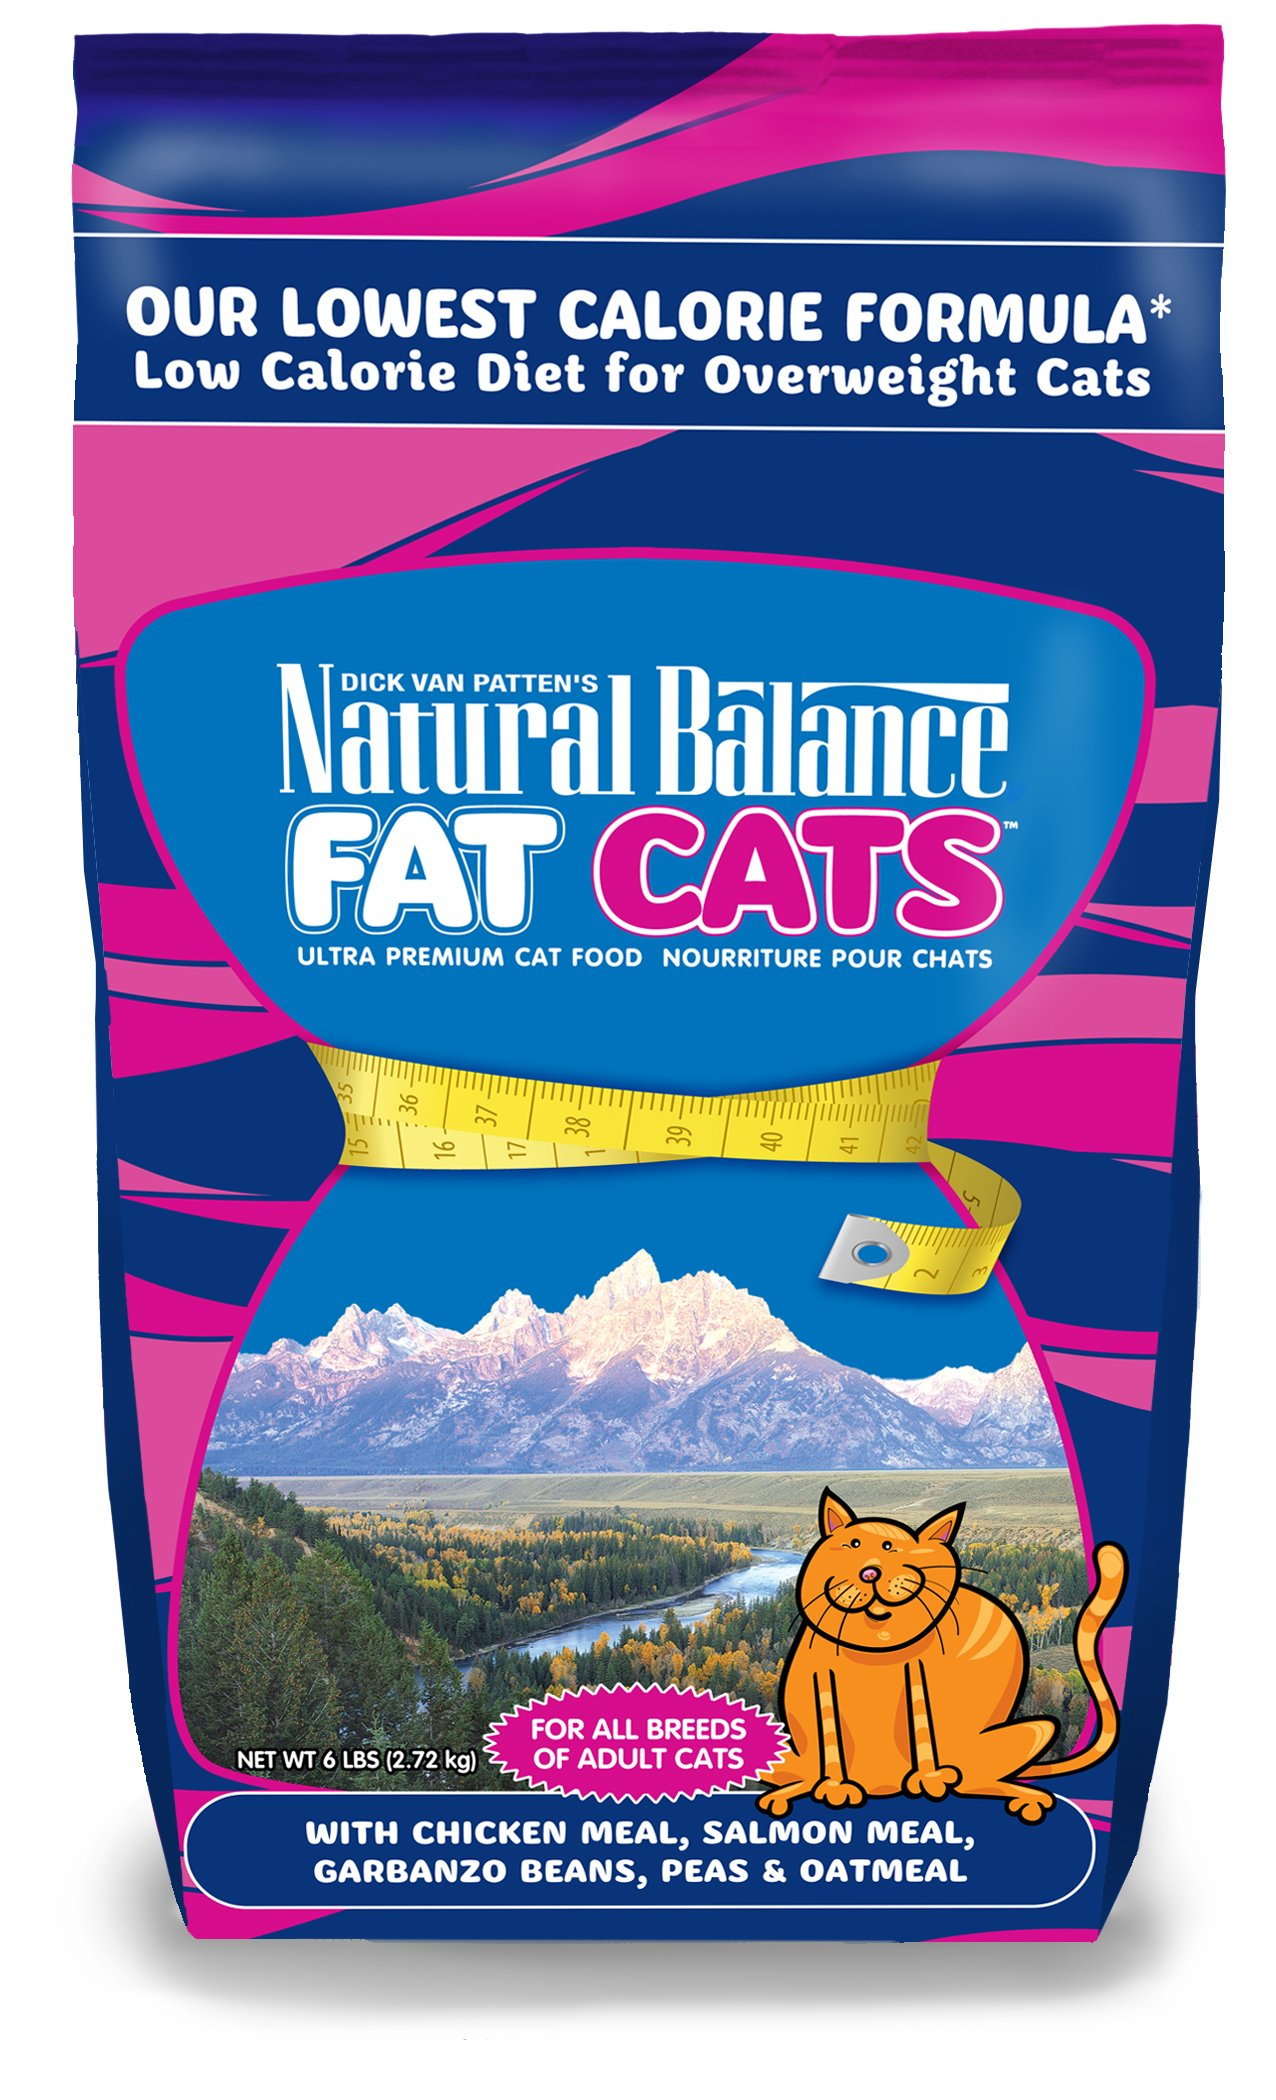 NATURAL BALANCE 236037 6-Pack Fat Cats Low Calorie Dry Cat Food, 6-Pound